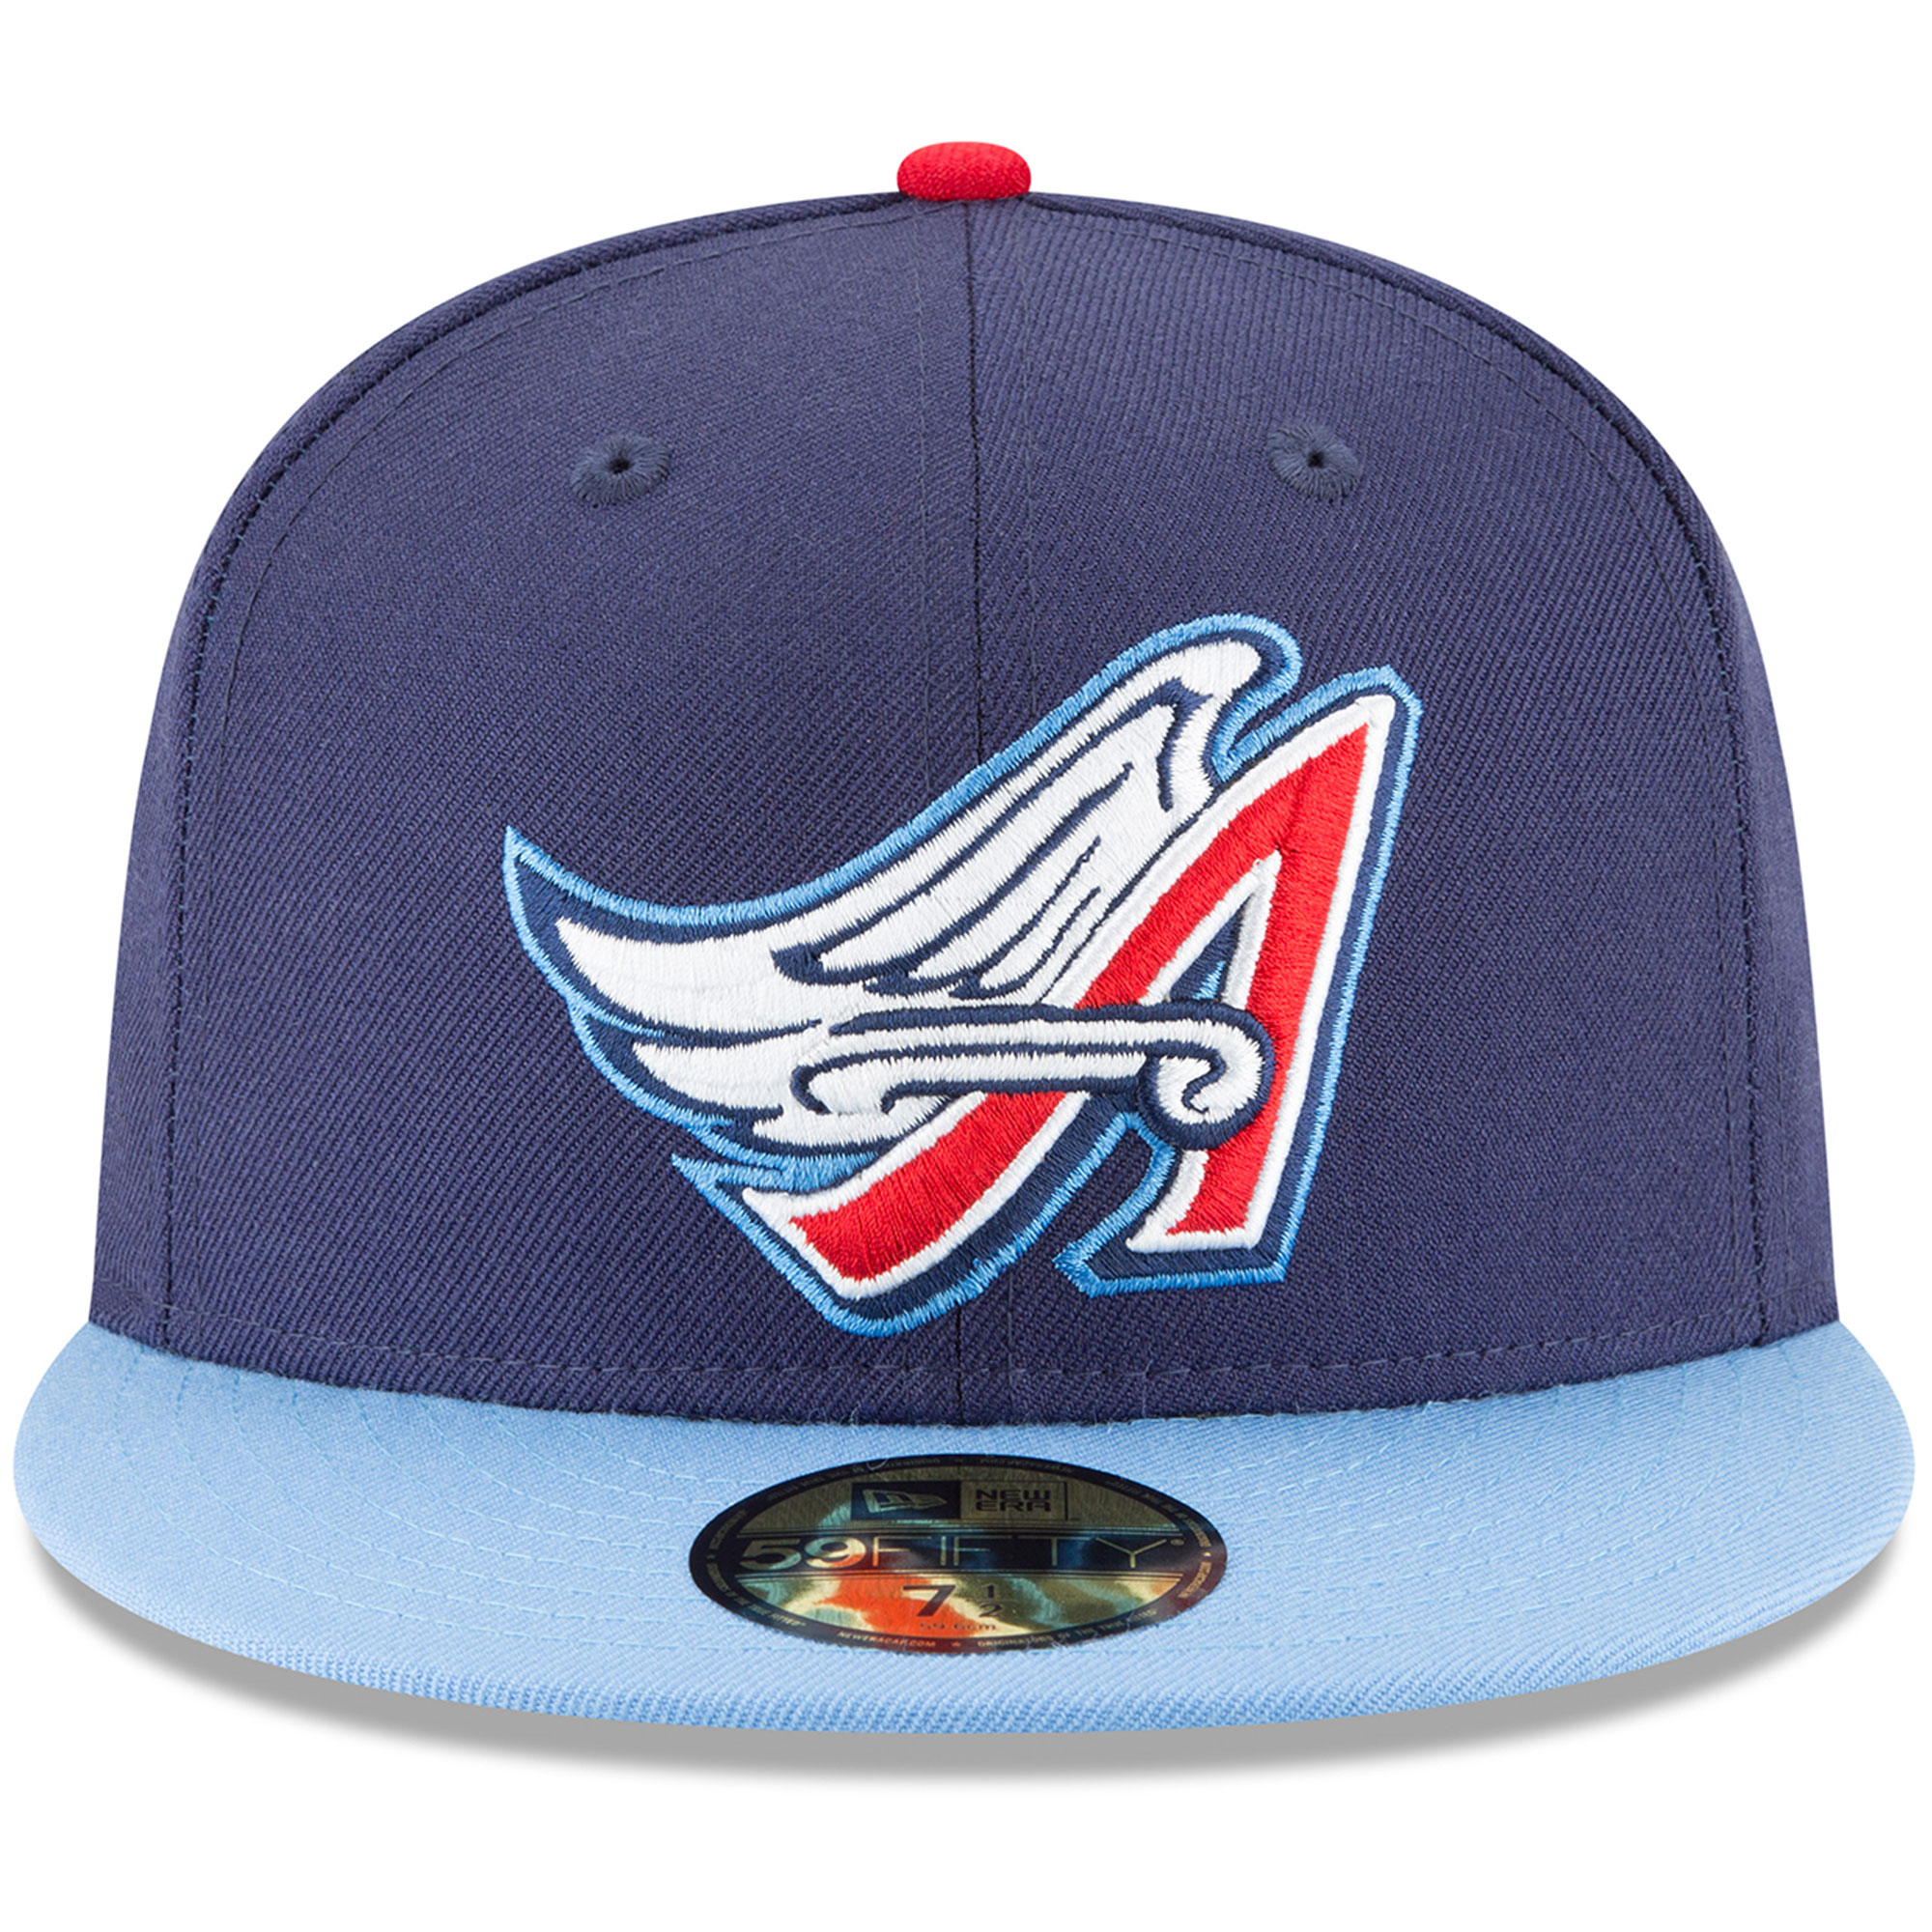 California Angels New Era Cooperstown Collection Wool 59FIFTY Fitted Hat -  Navy - Walmart.com e270beb066ef